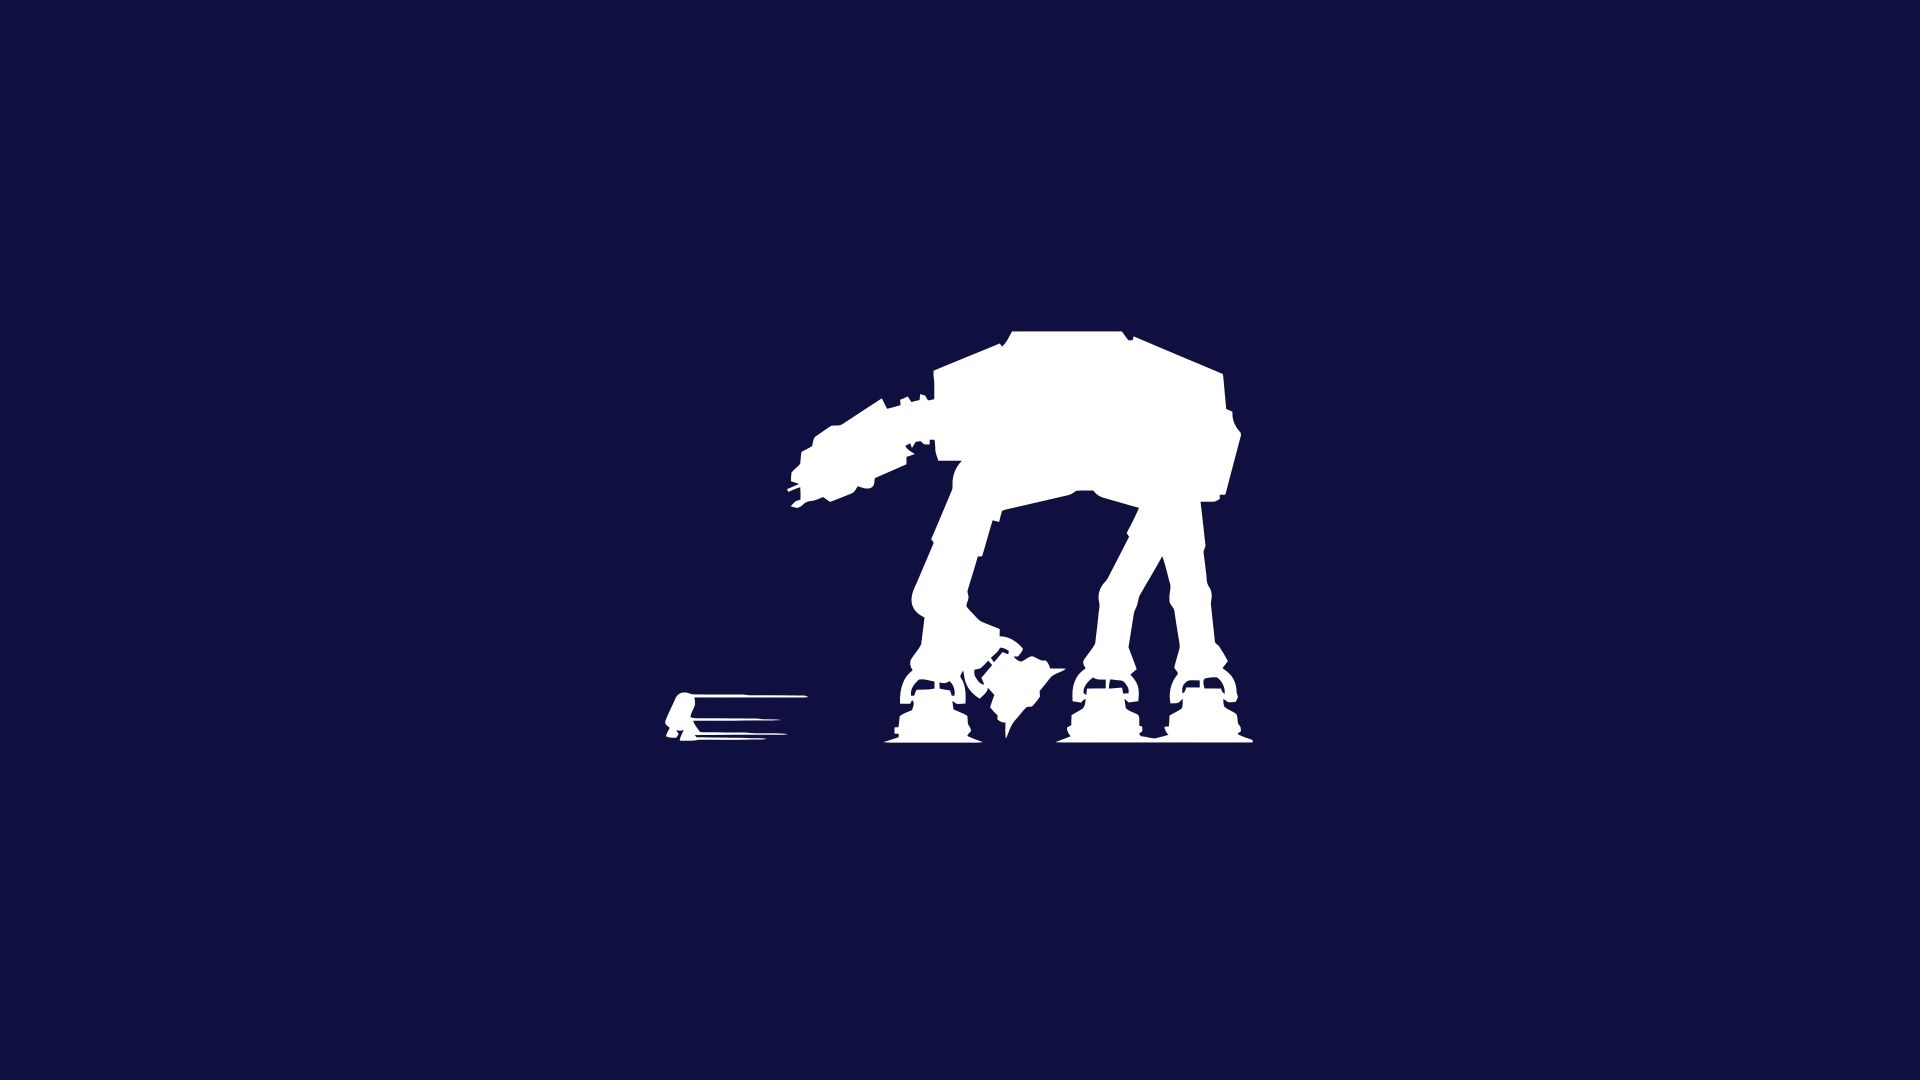 Star Wars Minimalist Wallpapers 66+ images WallpaperBoat